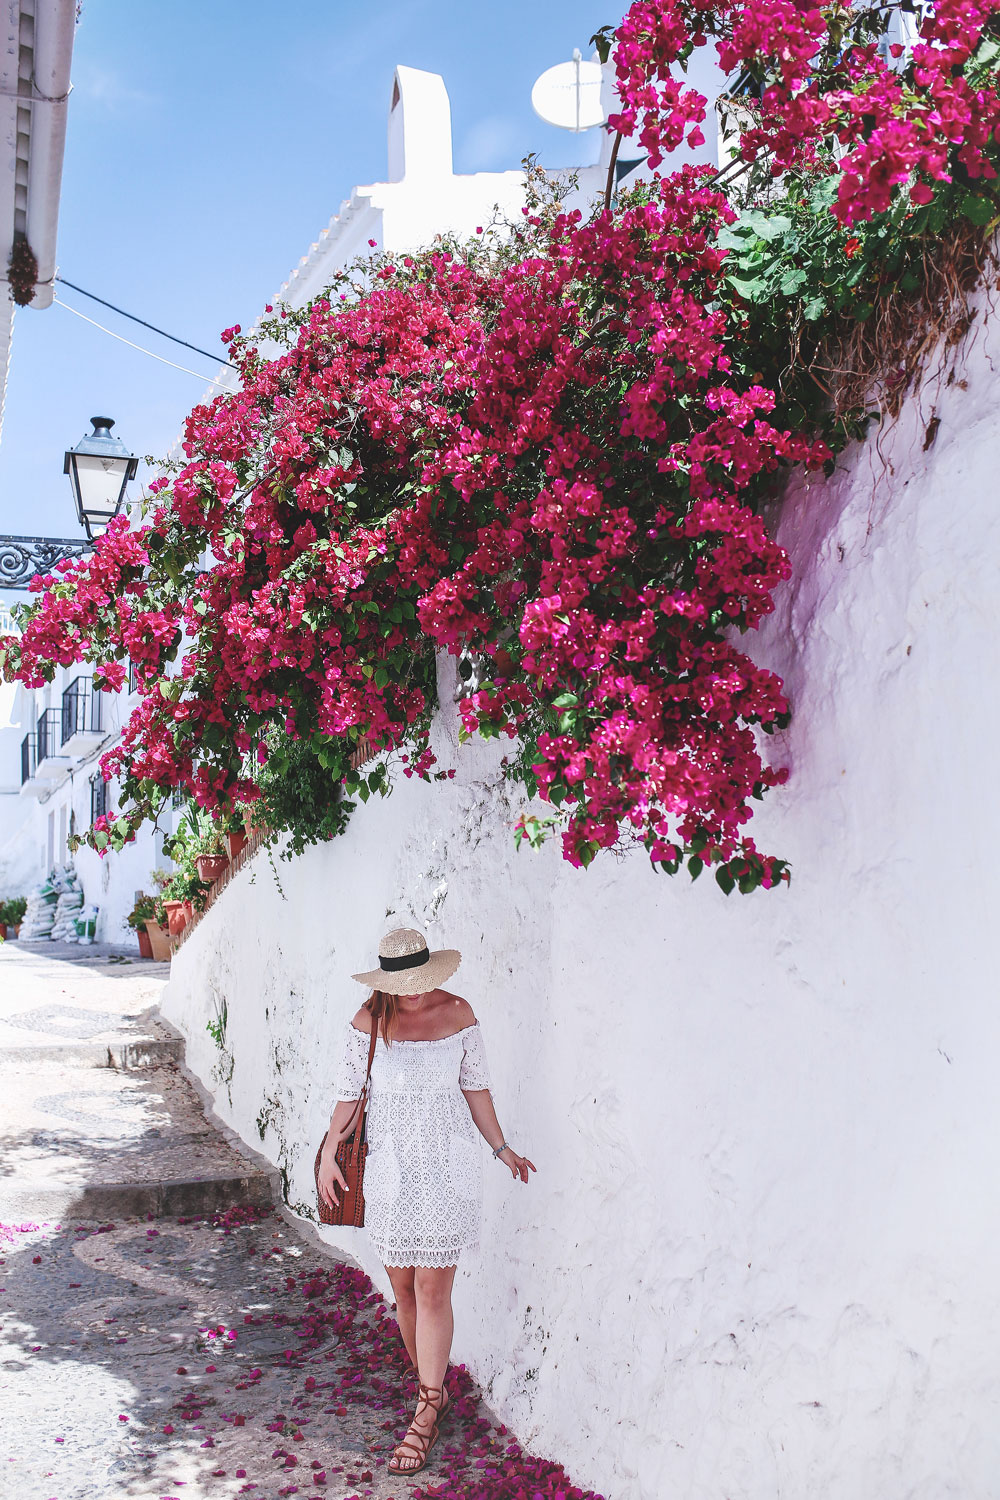 Costa del sol road trip travel guide by To Vogue or Bust